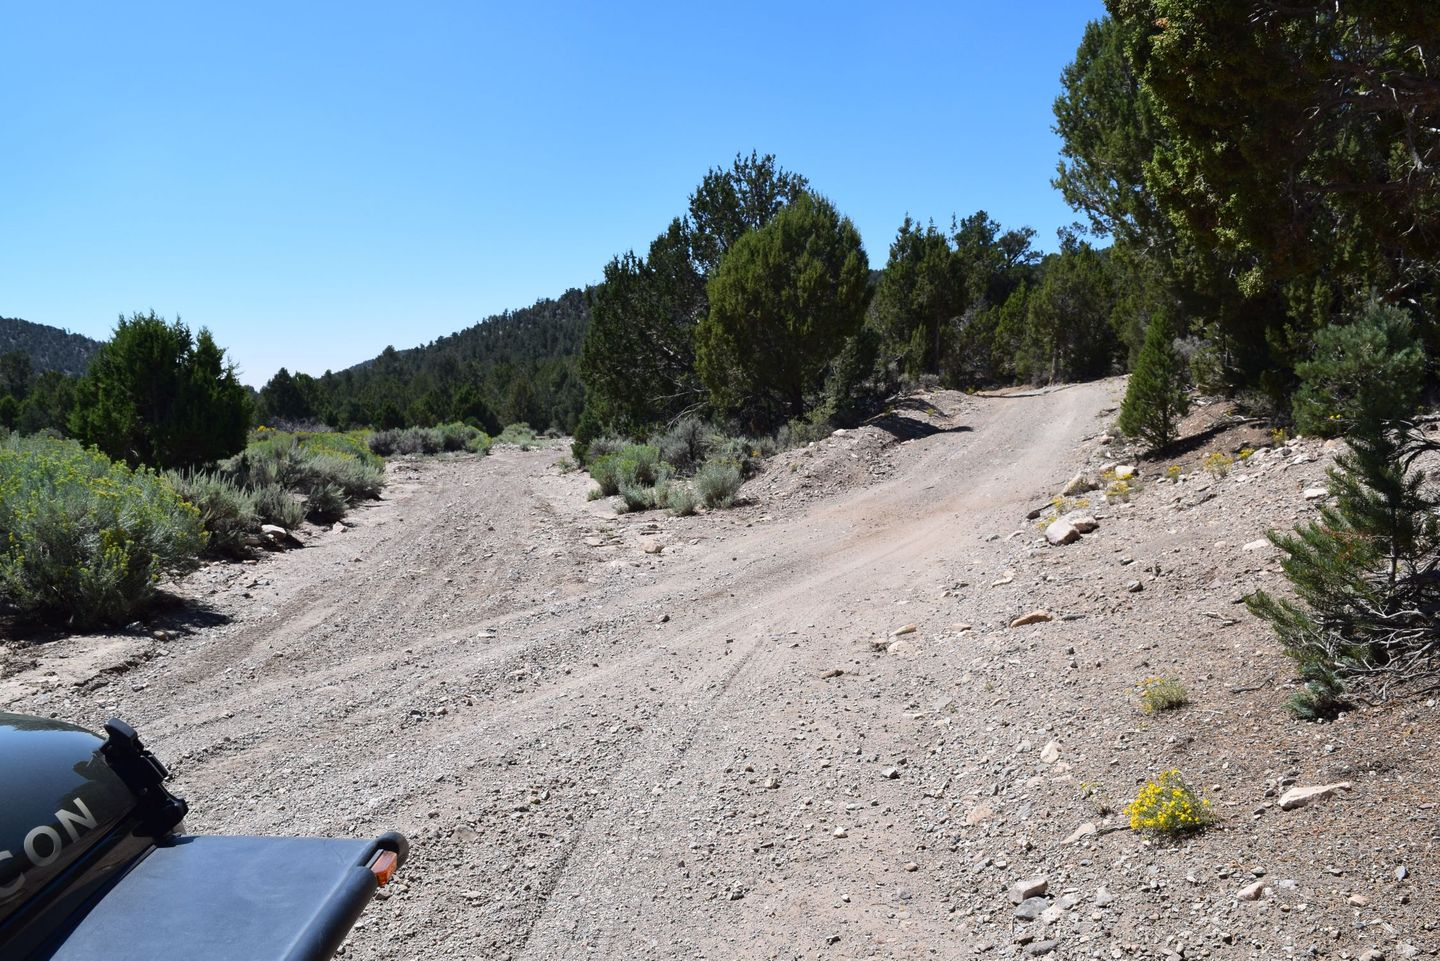 Wheeler Pass - Waypoint 21: Y Intersection